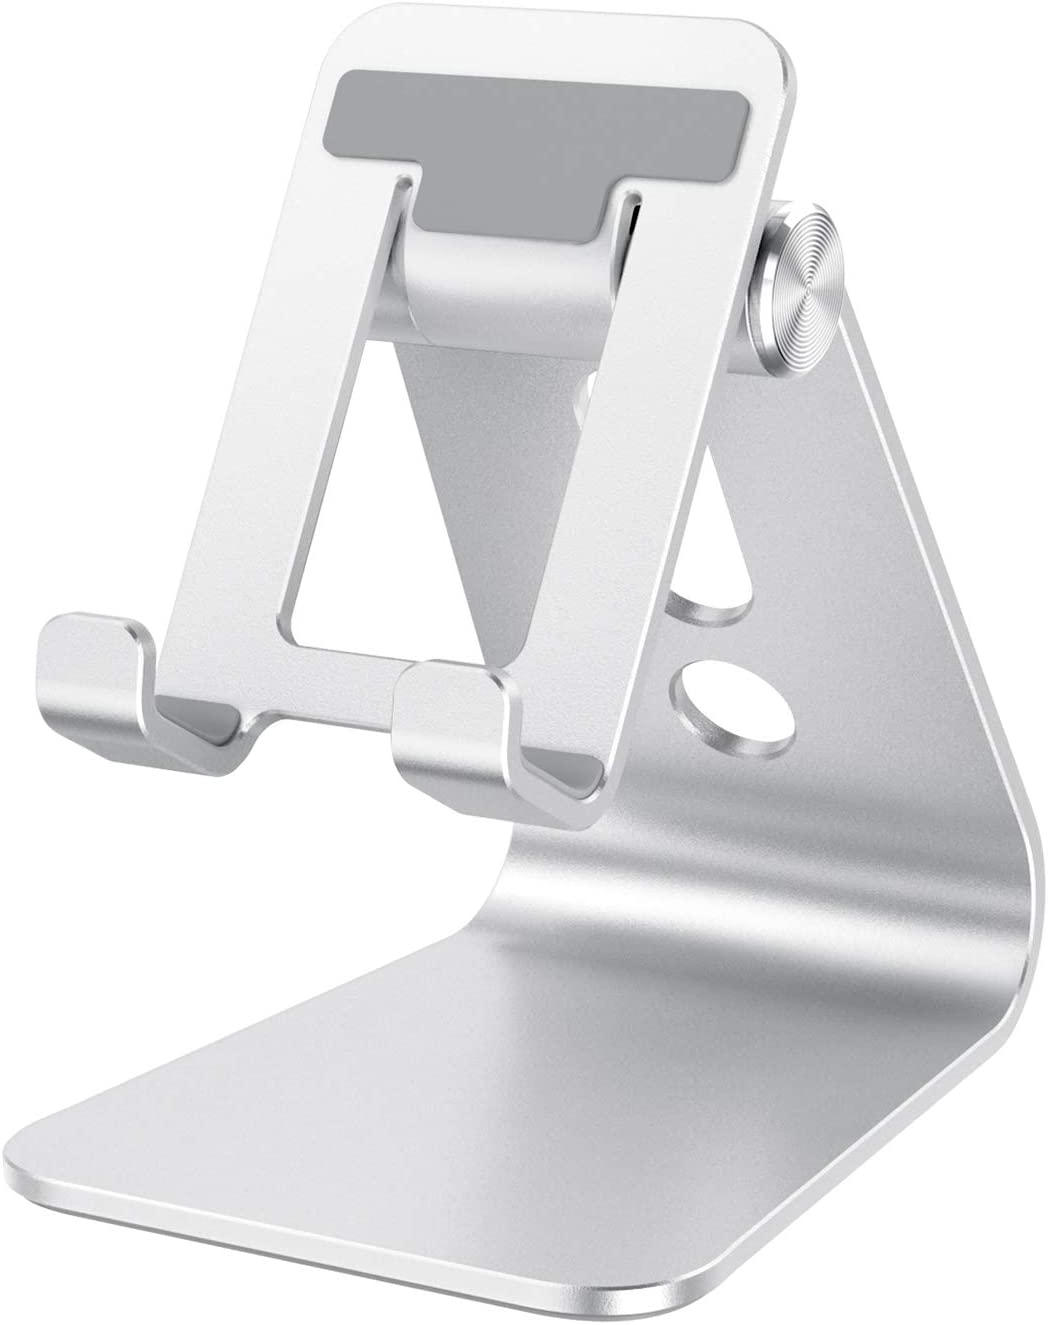 OMOTON Aluminum Desktop Phone Holder Cradle Dock Compatible with All Smartphone iPhone 11 Pro Max Xs Xr X 8 7 6 6s Plus 5 5s 5c Silver Cell Phone Stand Adjustable